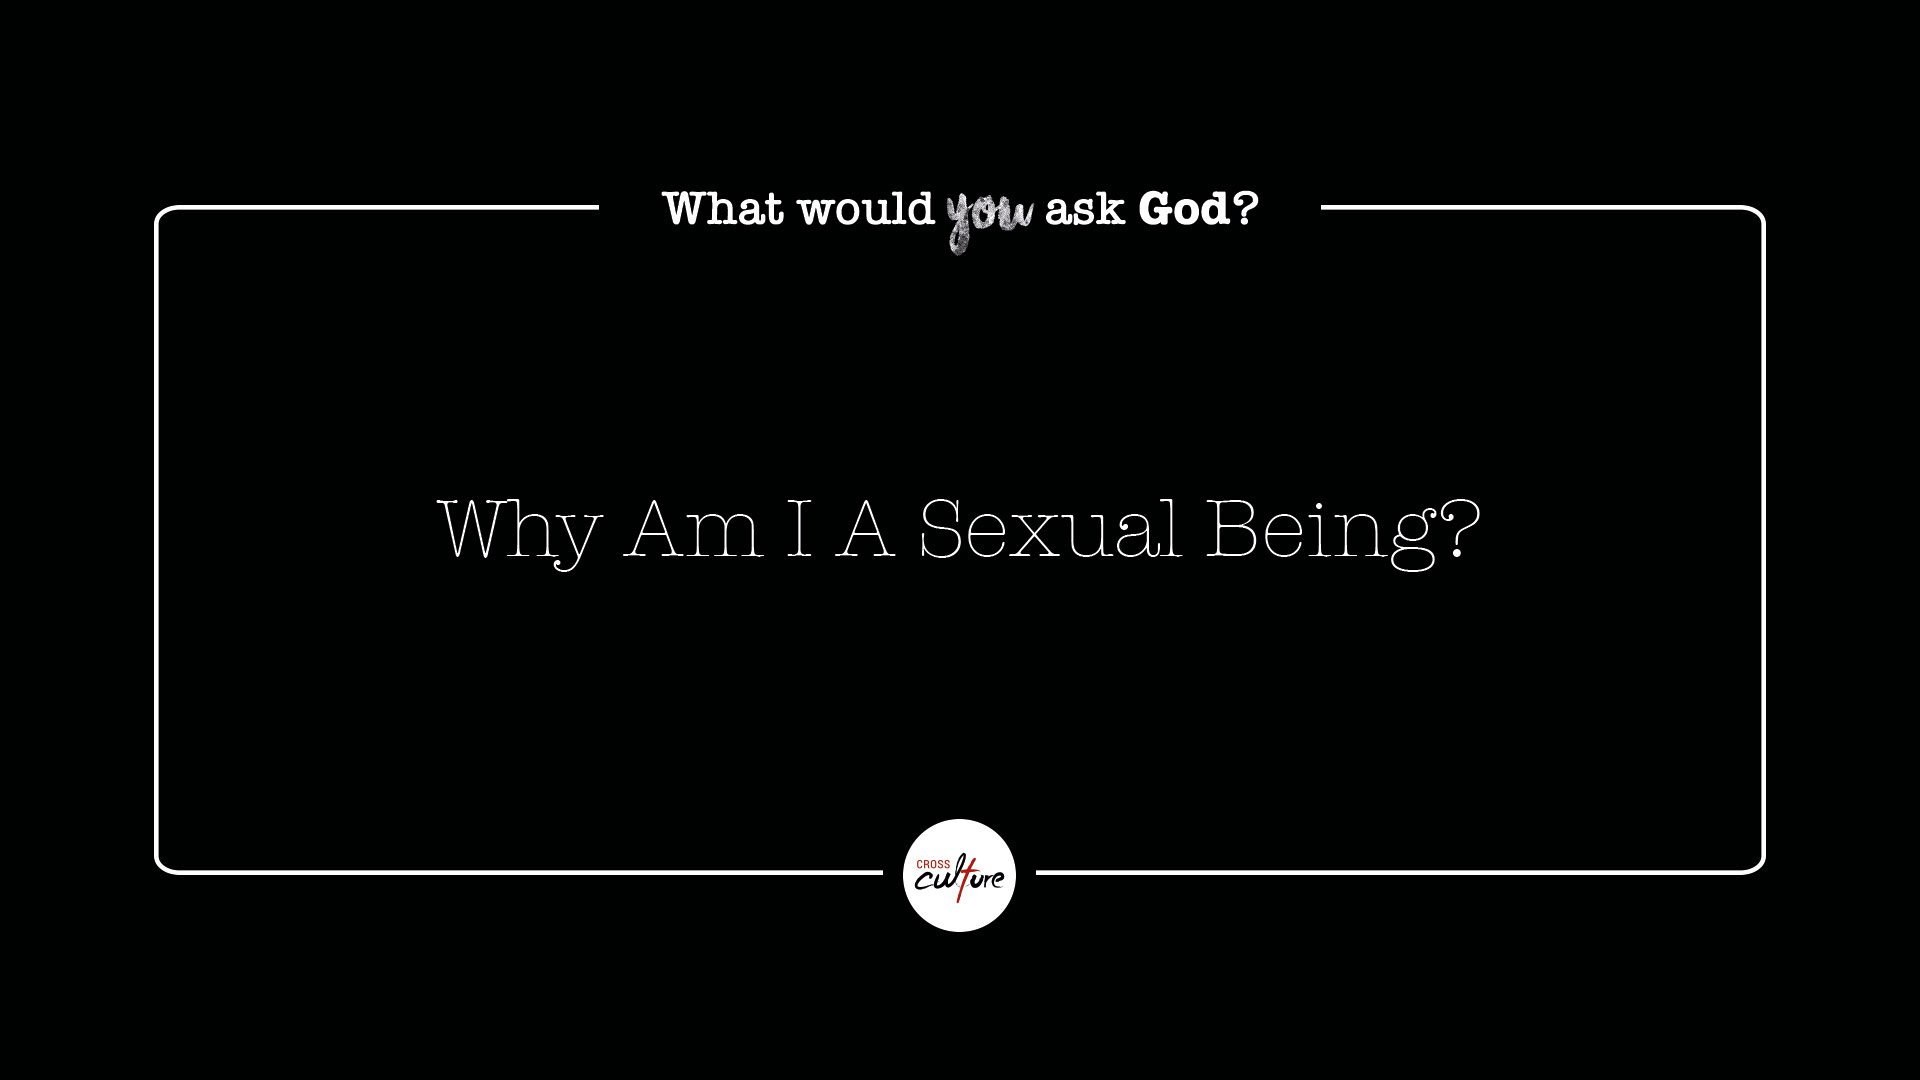 Why Am I A Sexual Being?